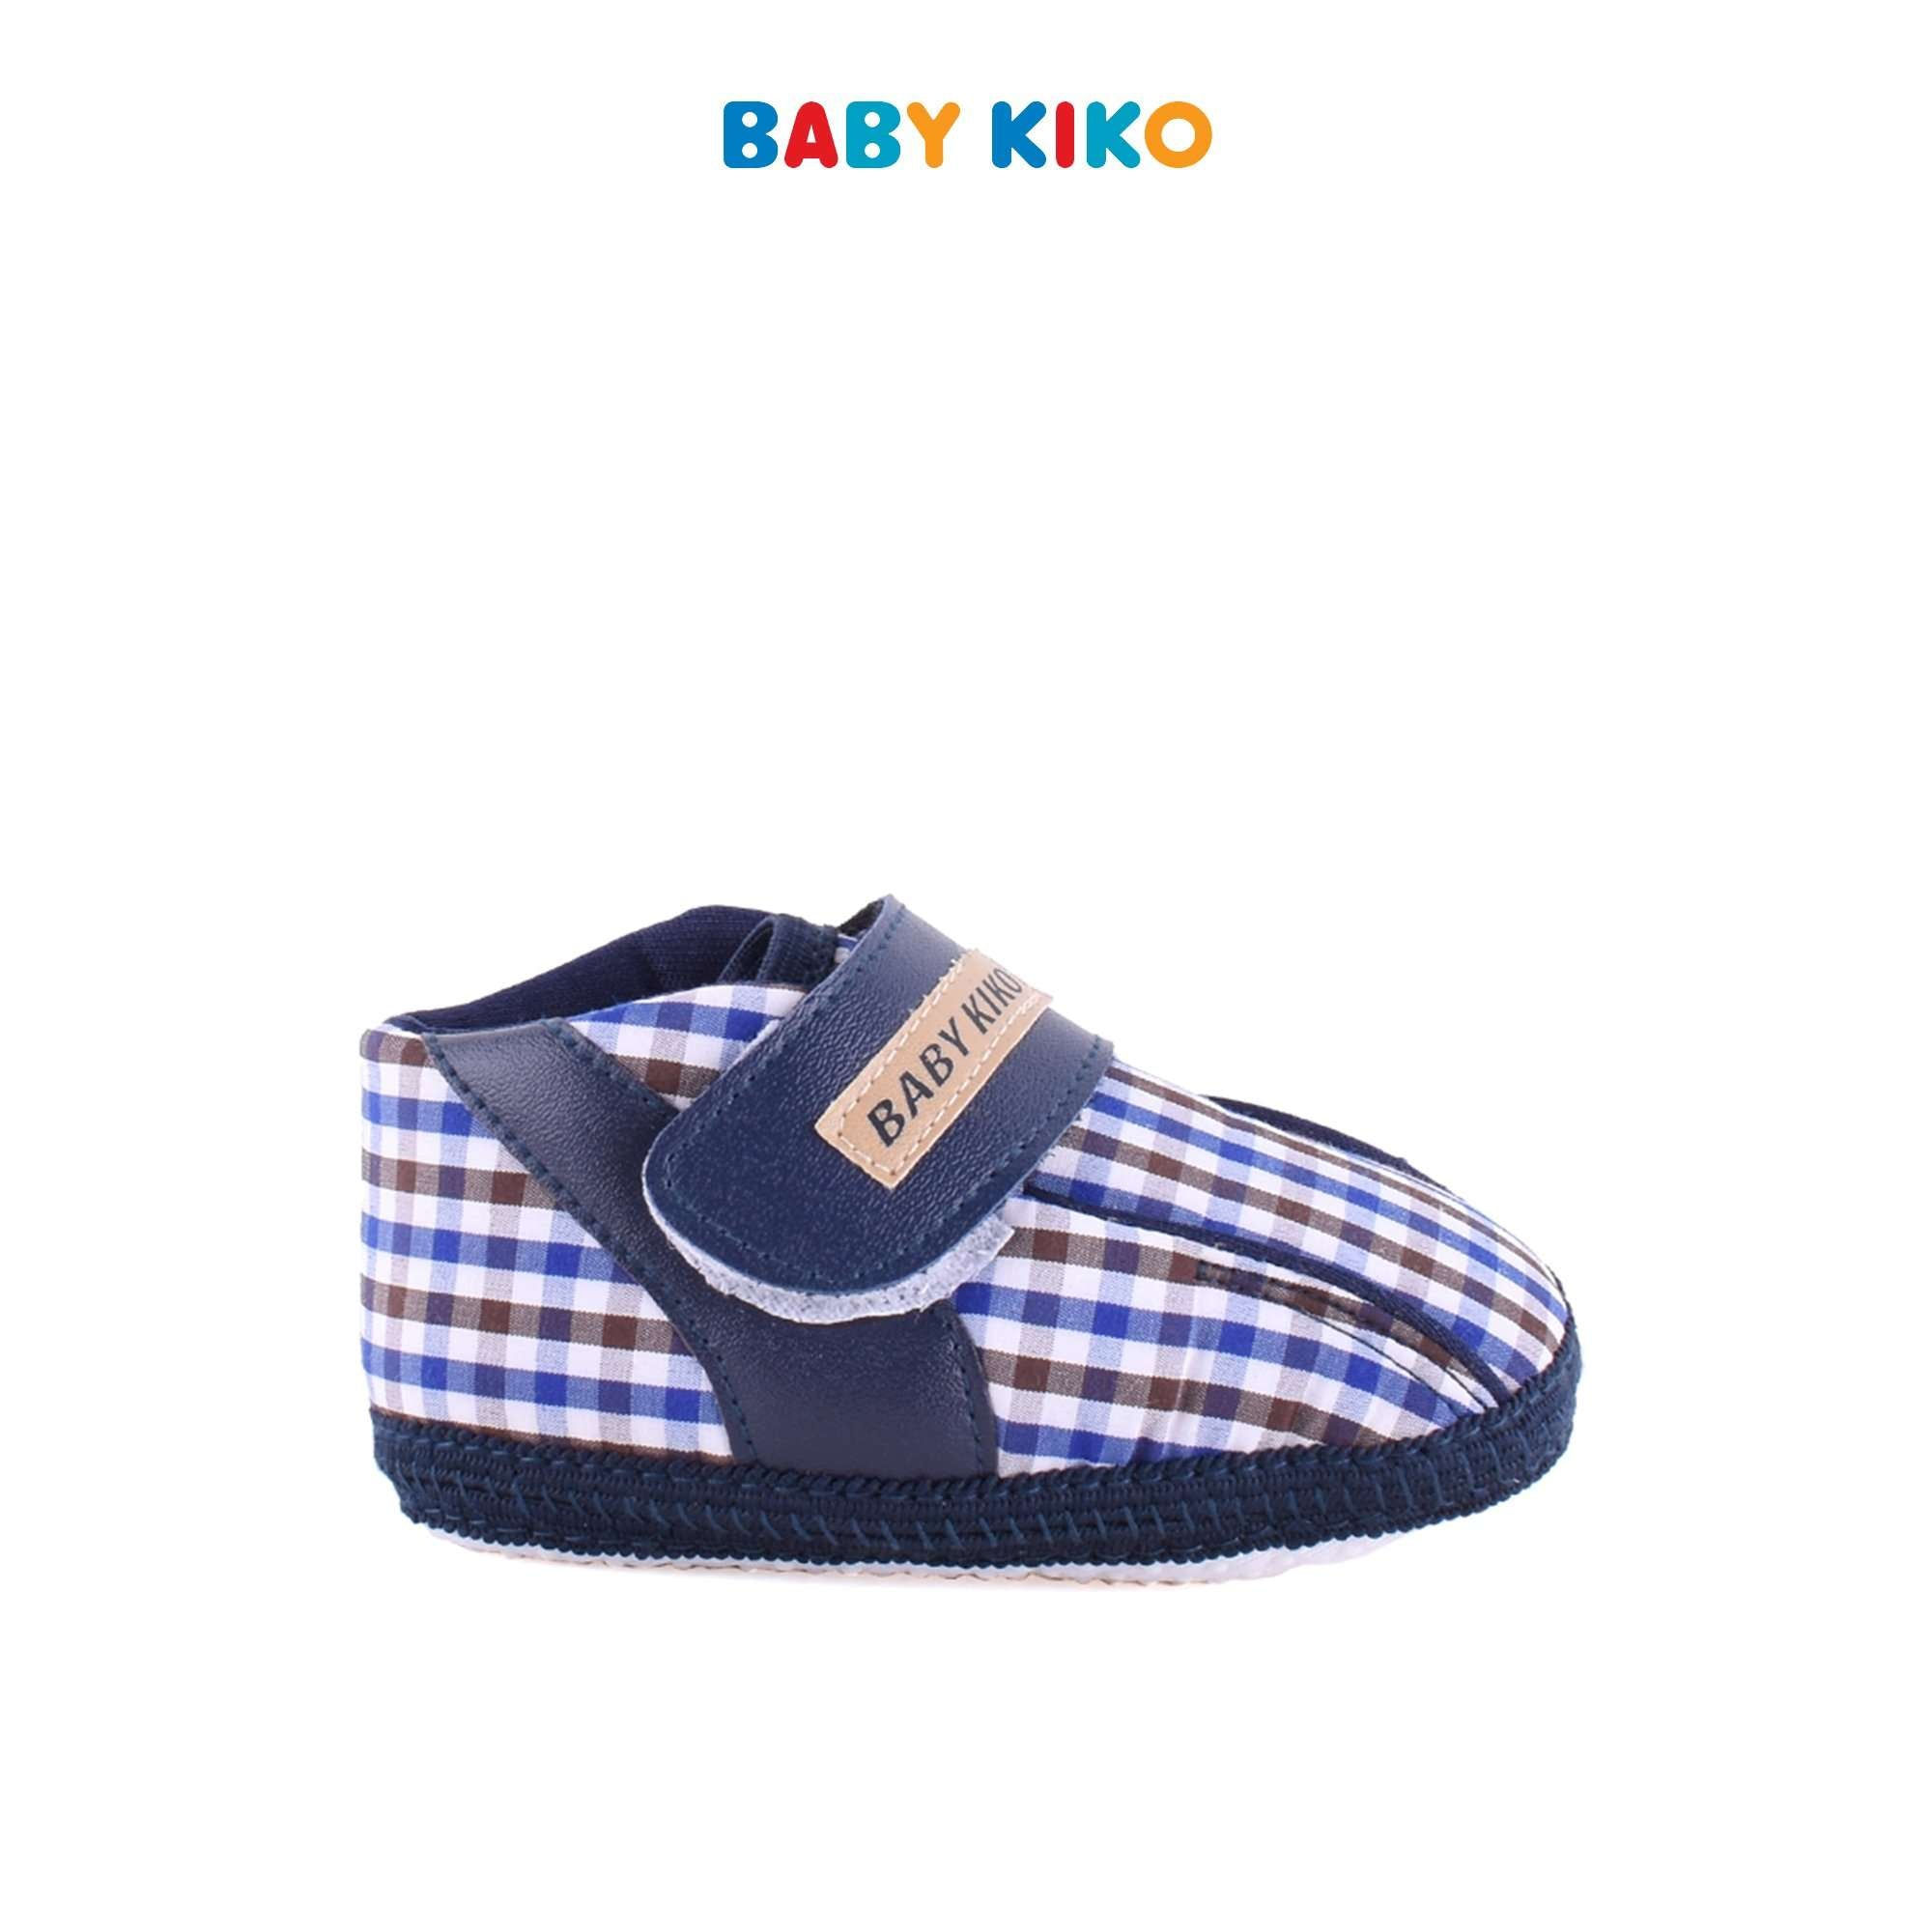 Baby KIKO Baby Boy Textile Shoes - Blue B921106-5080-L5 : Buy Baby KIKO online at CMG.MY